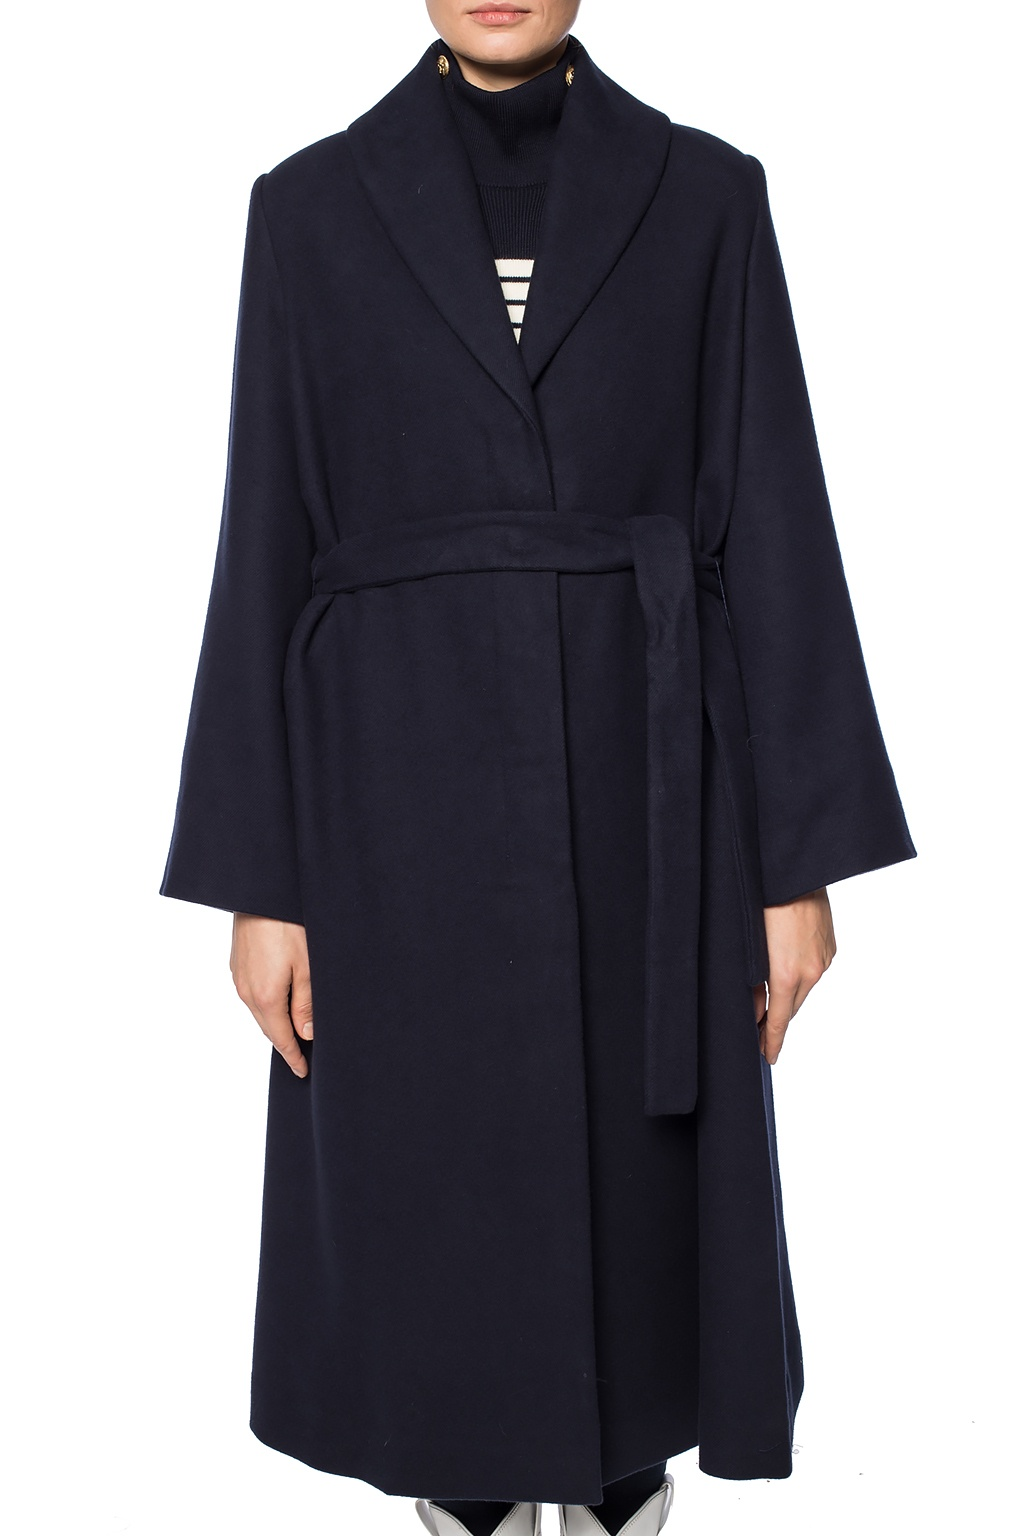 The Row Coat with shawl lepels